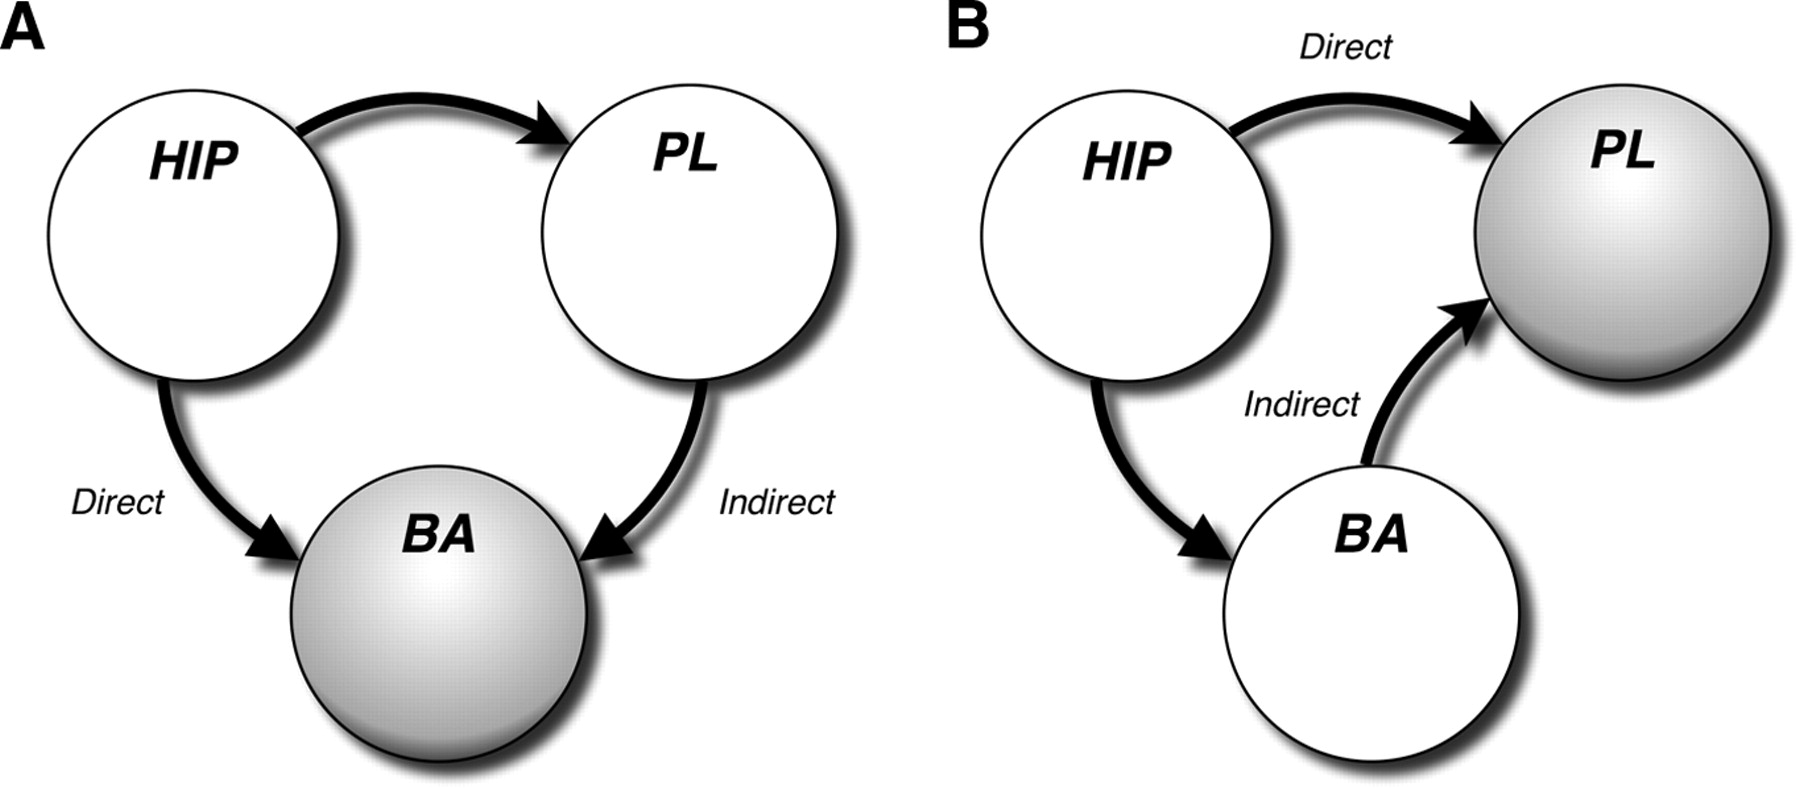 hippocampal and prefrontal projections to the basal amygdala mediate